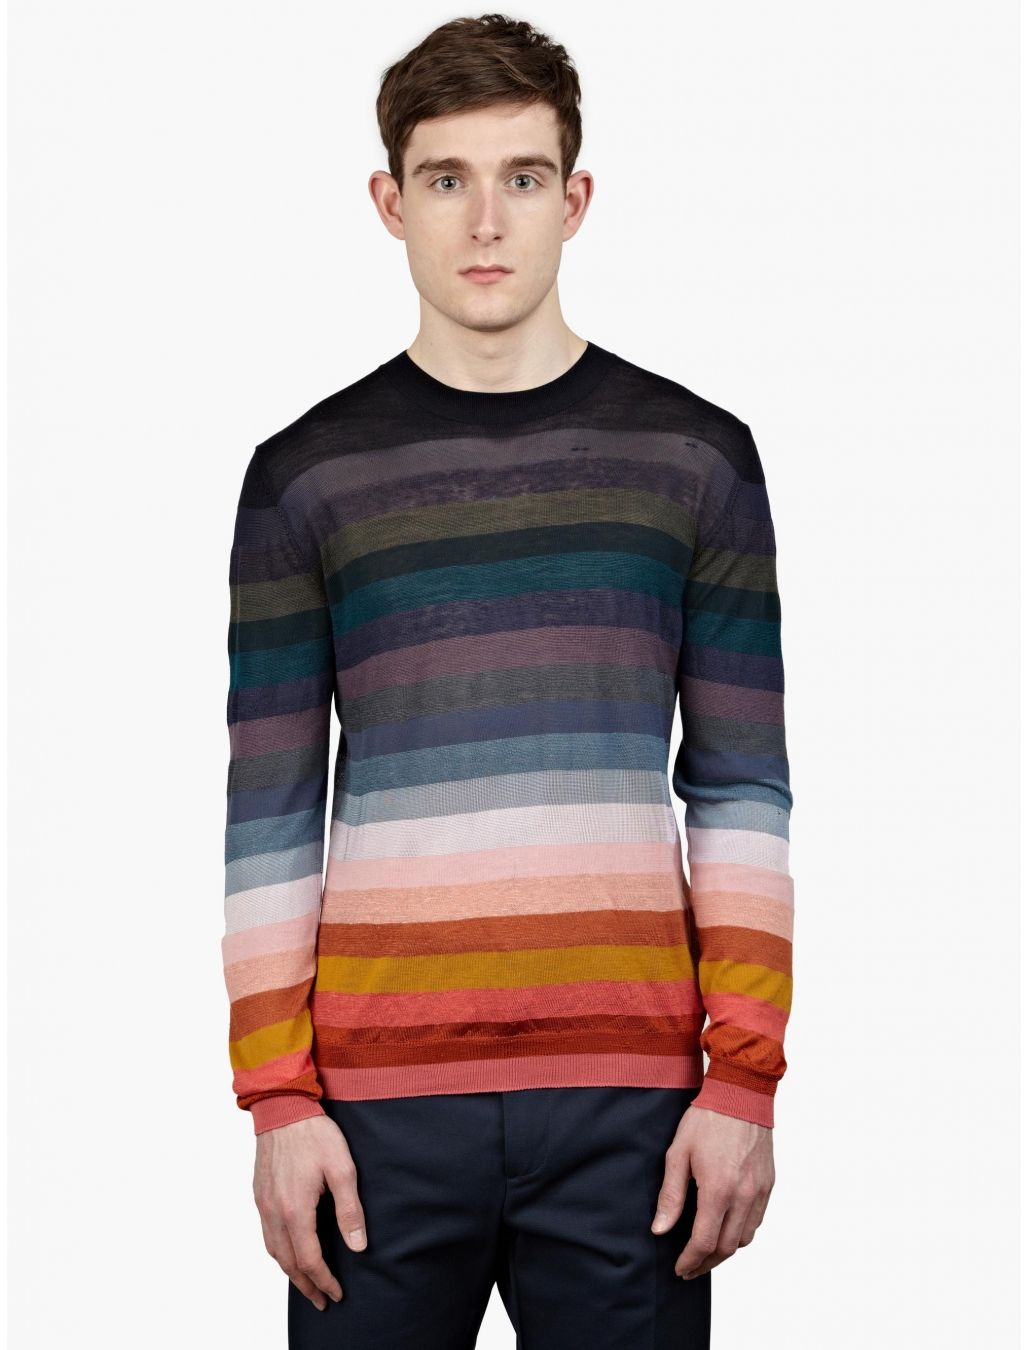 Paul Smith Men's Striped Fine-Knit Sweater | oki-ni